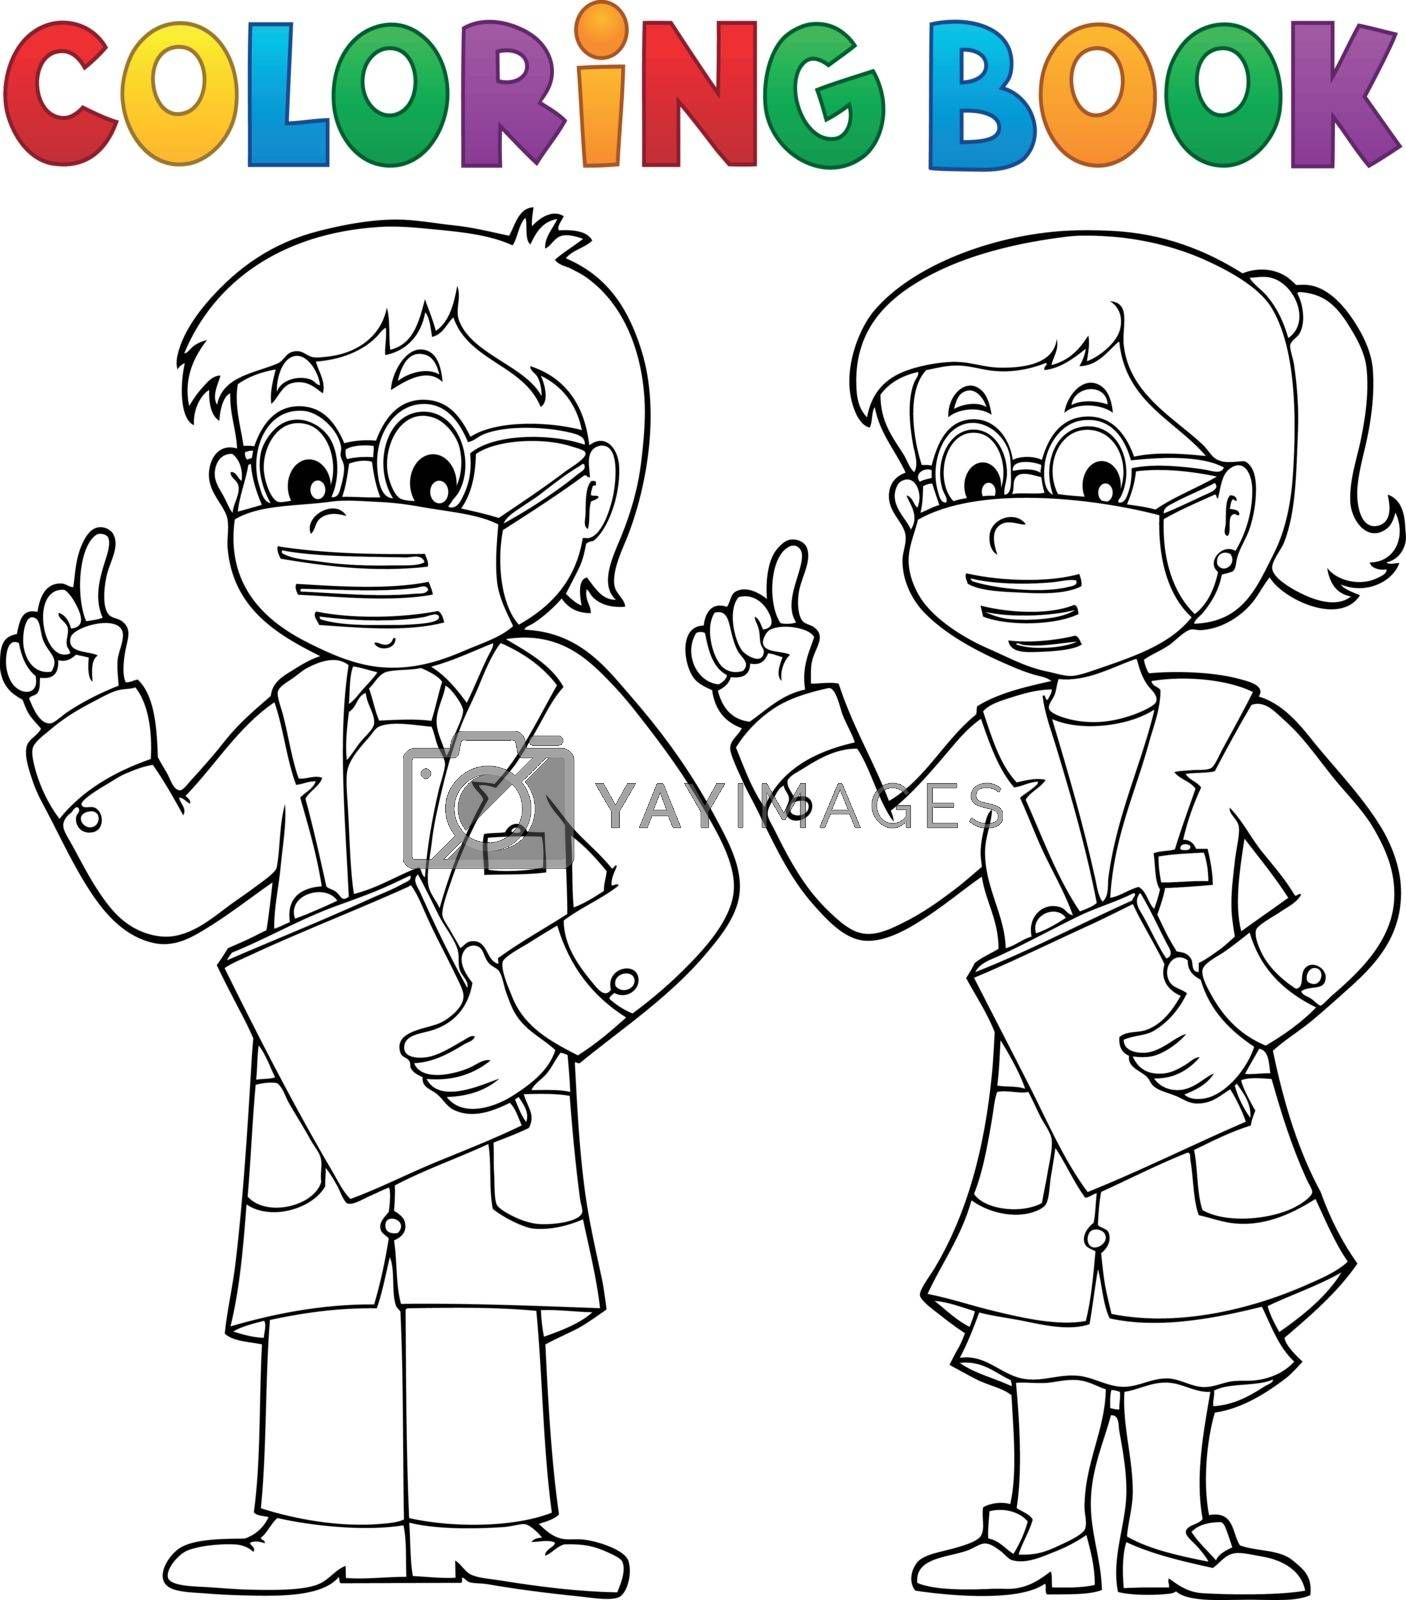 Coloring book two advising doctors - eps10 vector illustration.